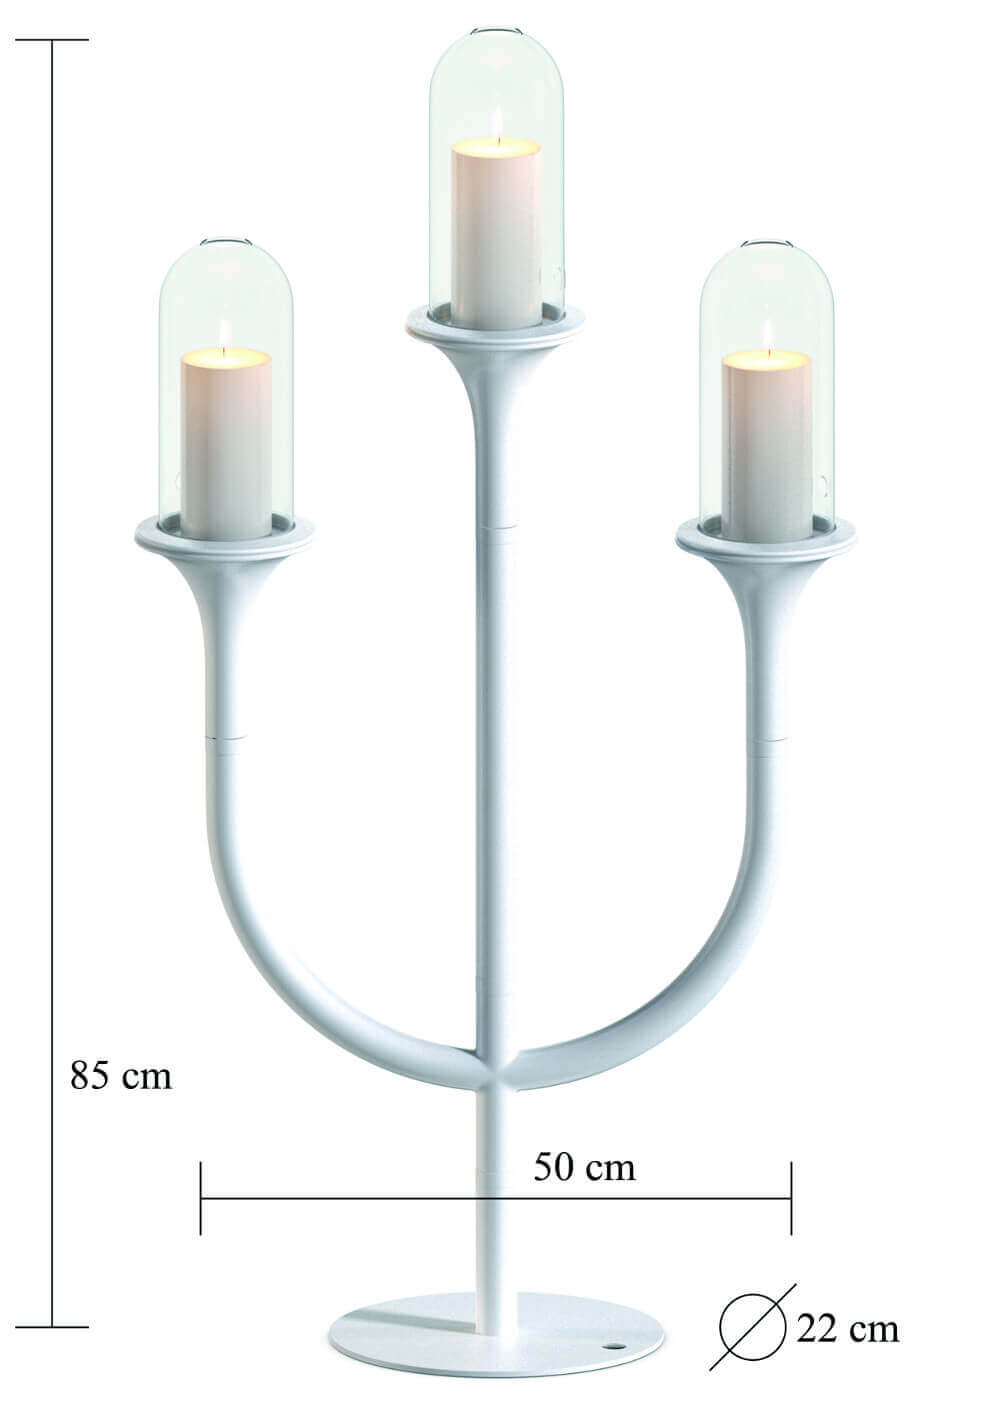 RiZZ Candelabra trio white sizes Teun Fleskens